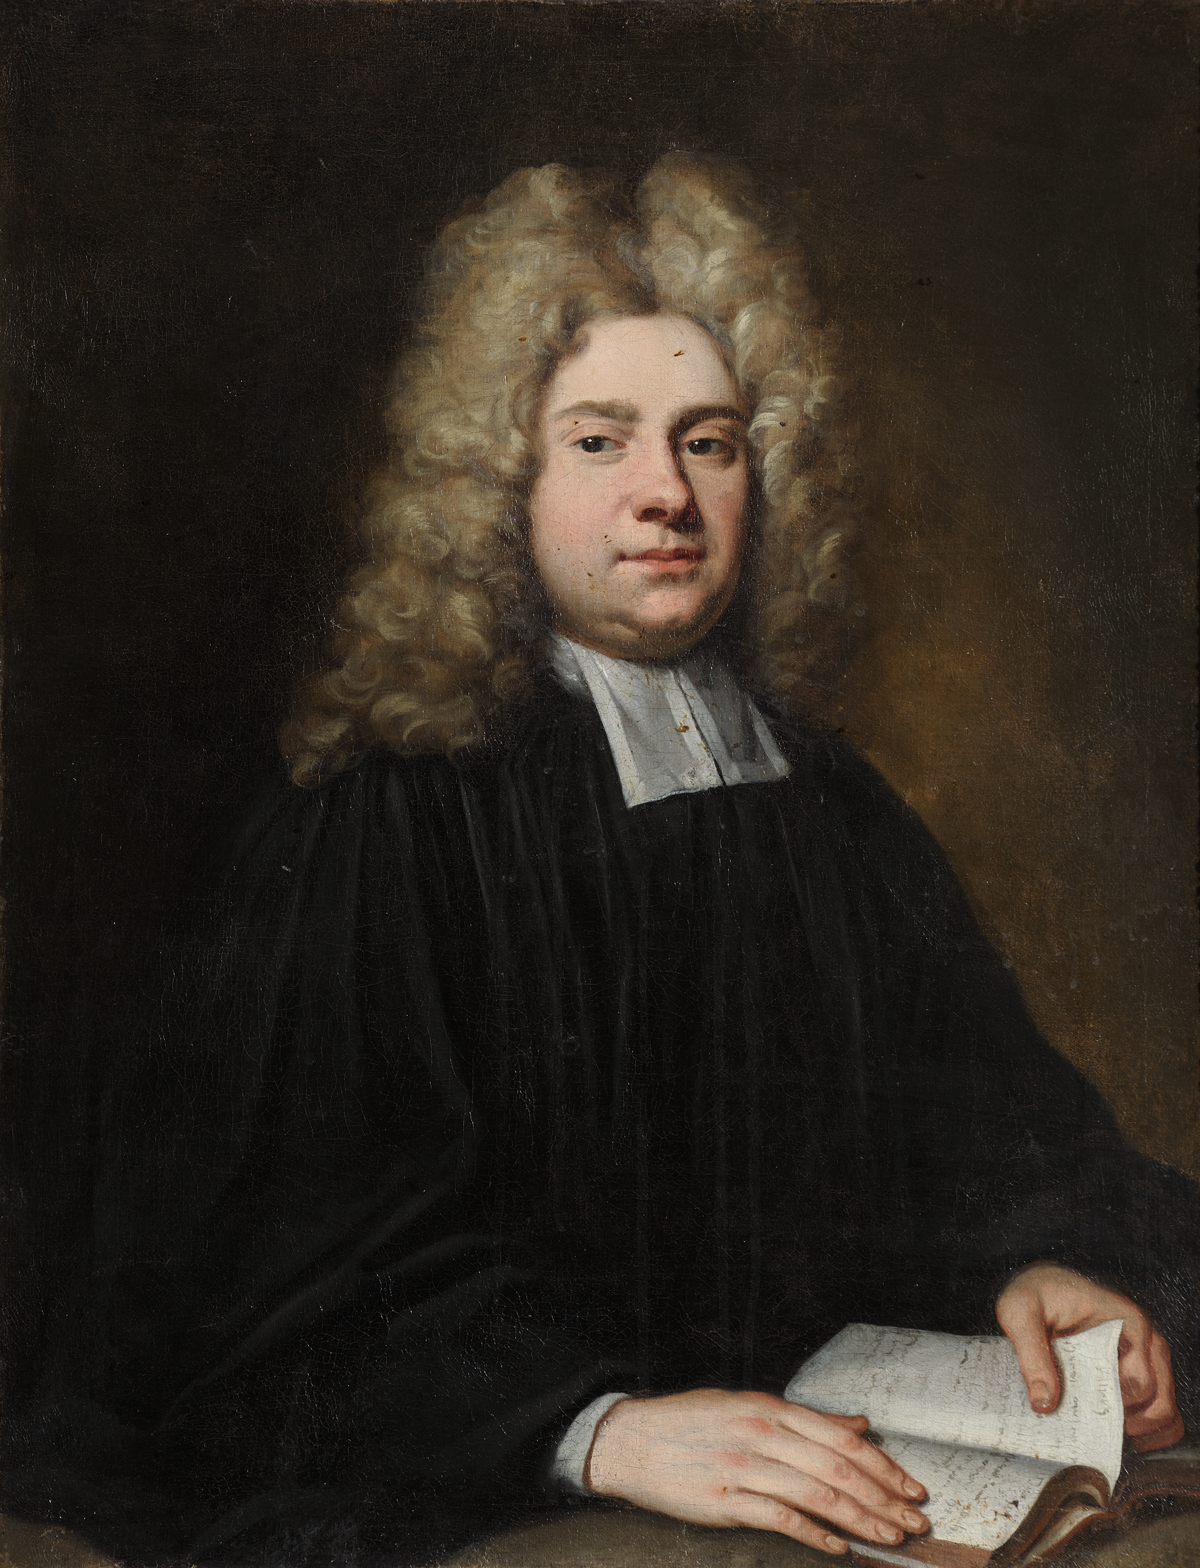 A painting of Laurence Echard by [[Godfrey Kneller